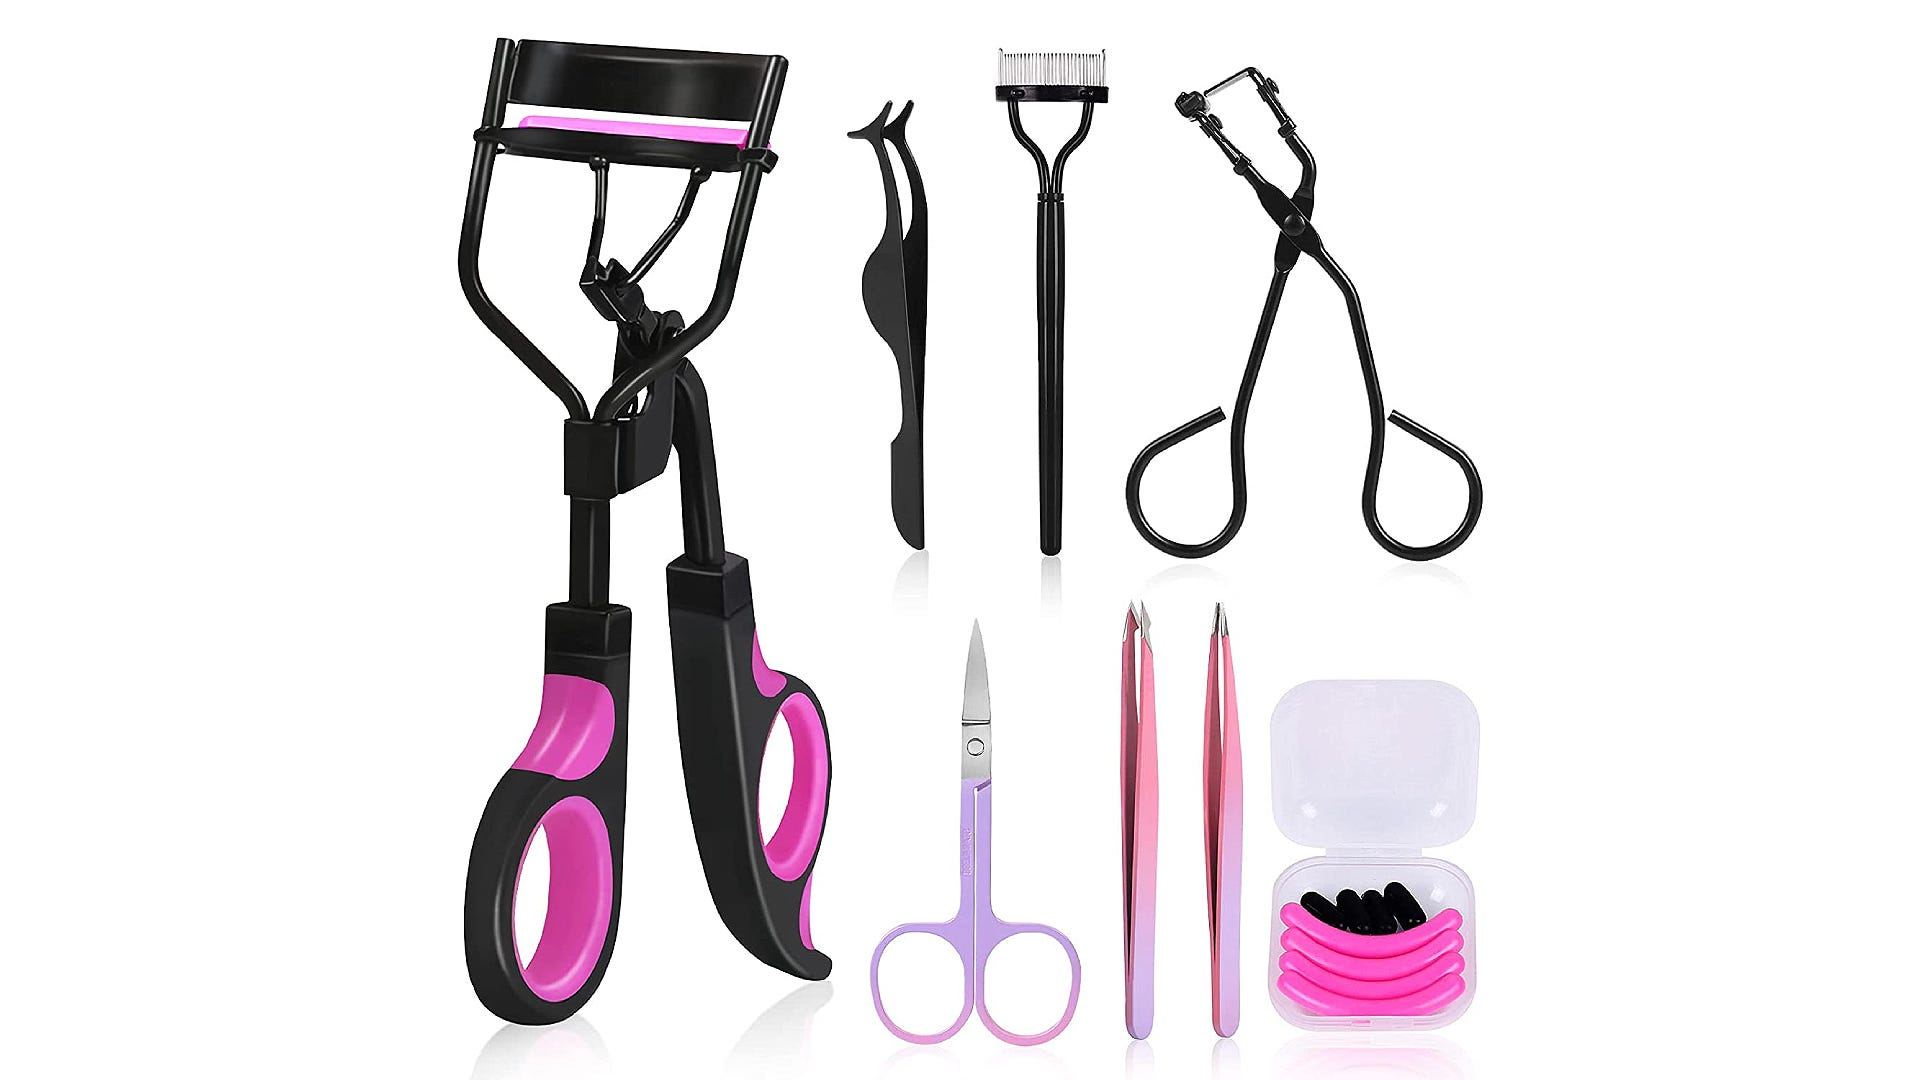 A complete set of black and purple eyelash curler tools.